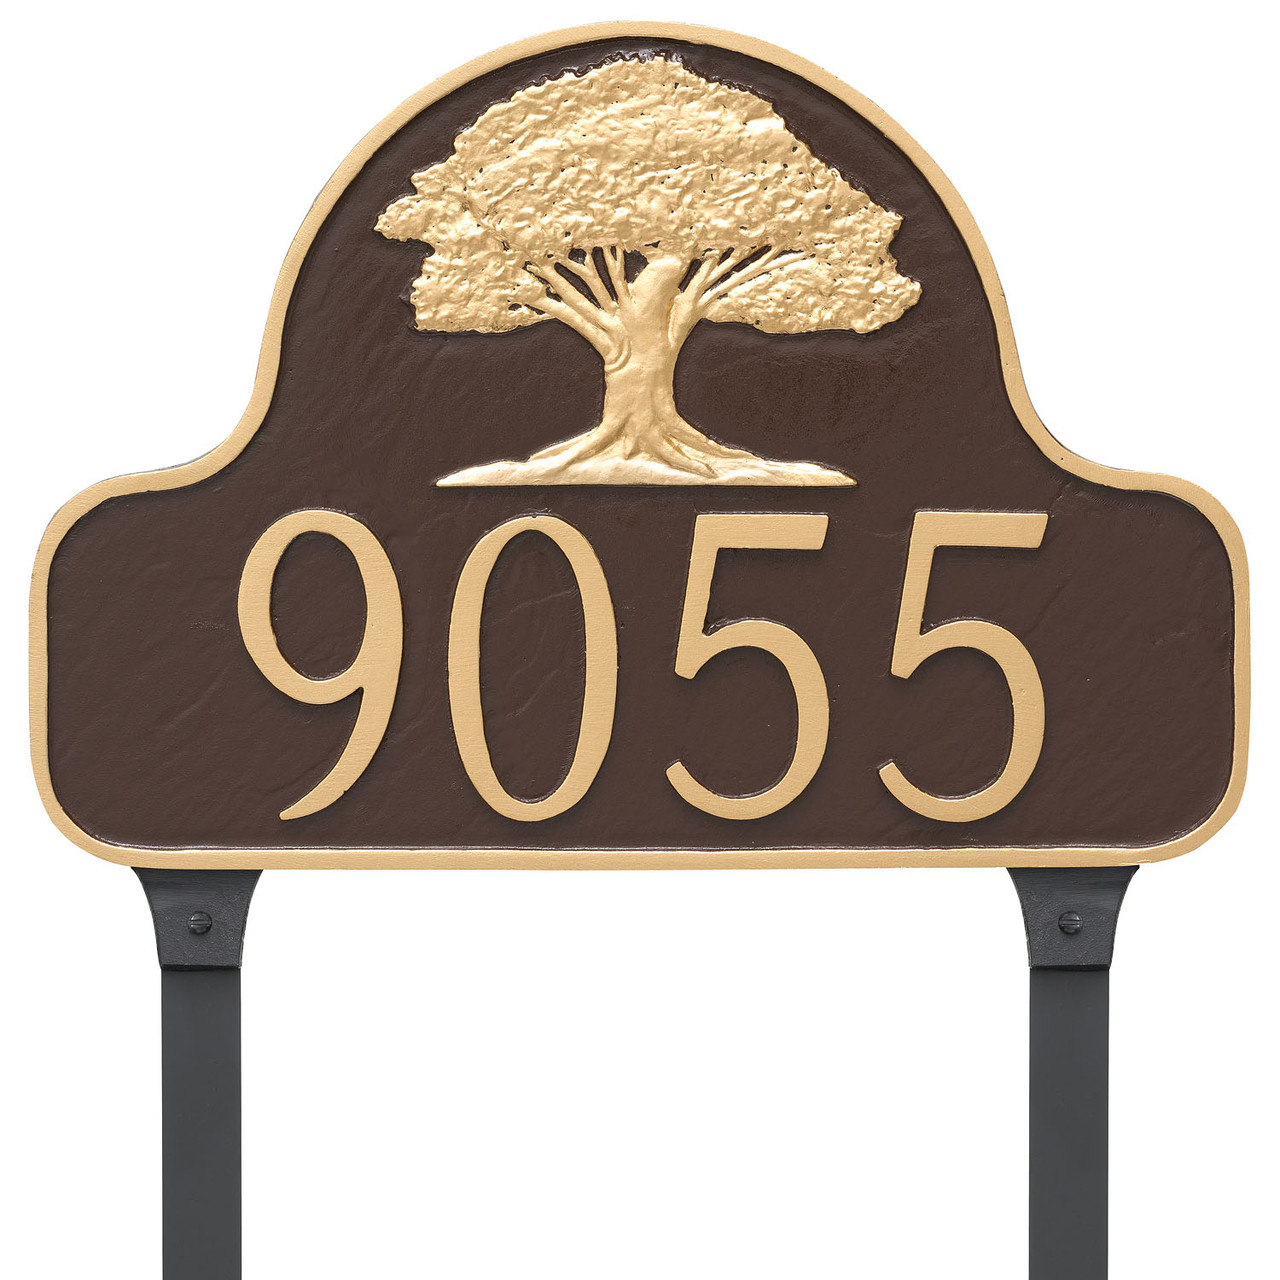 Oak Tree House Number Plaque shown with lawn stakes